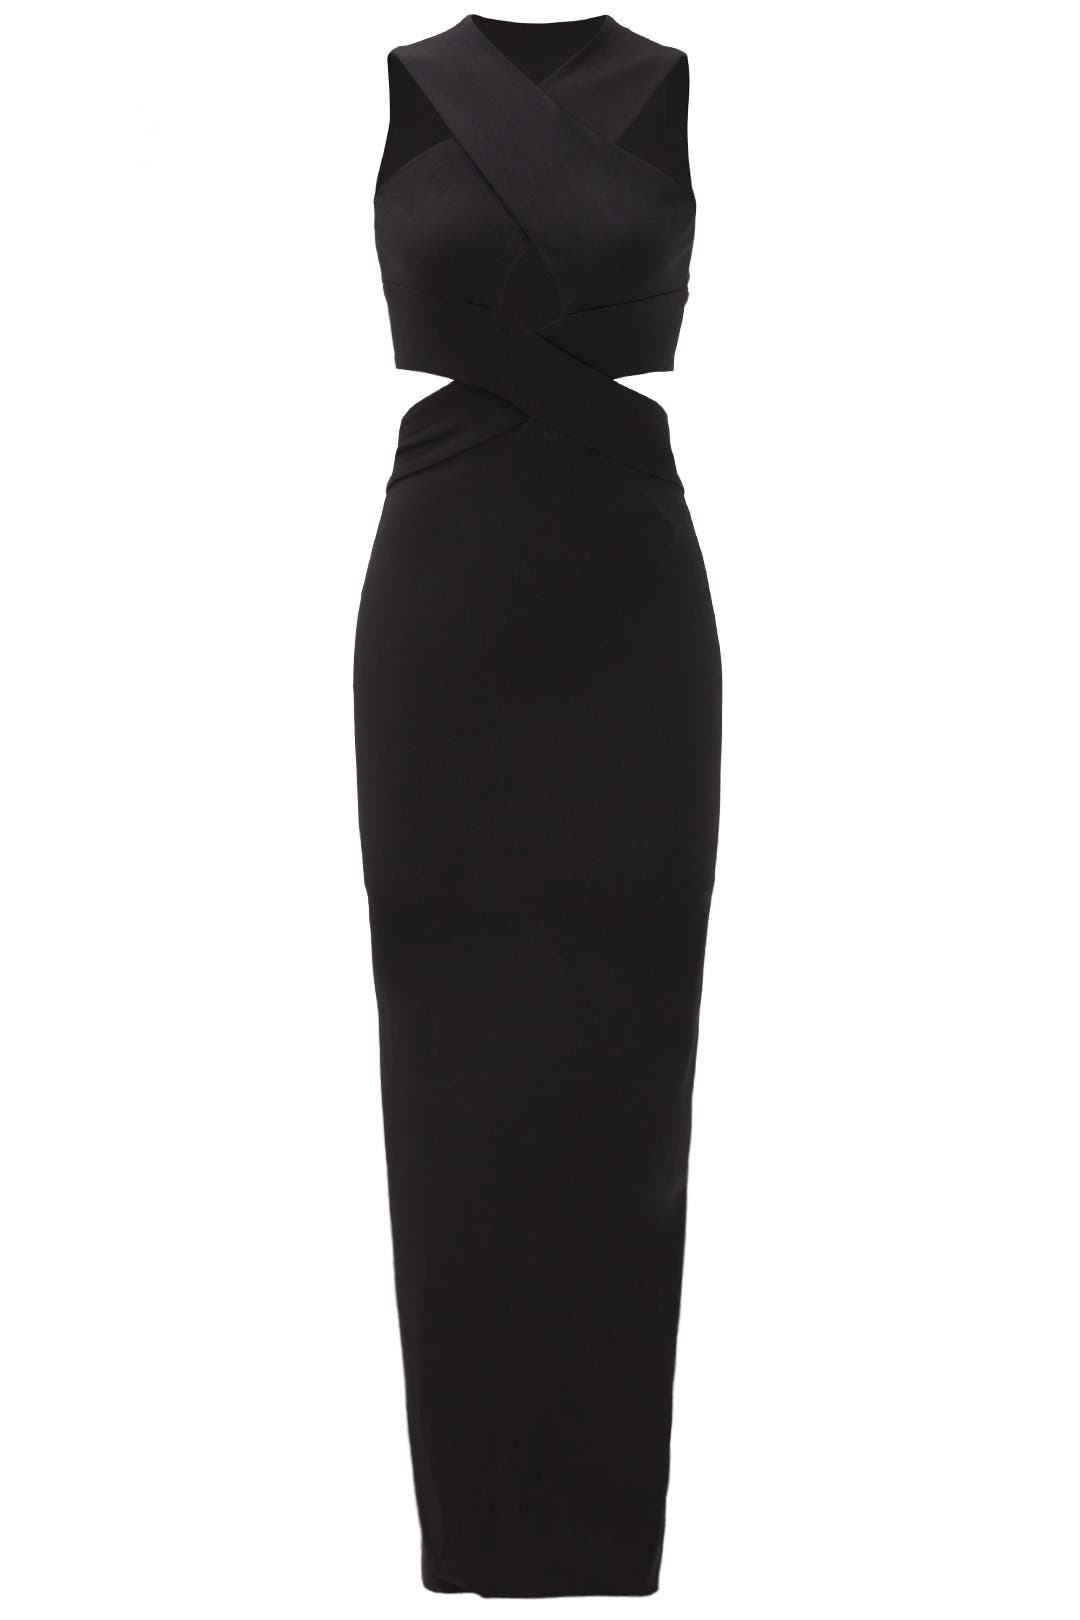 Black Adalyn Gown By Solace London For 70